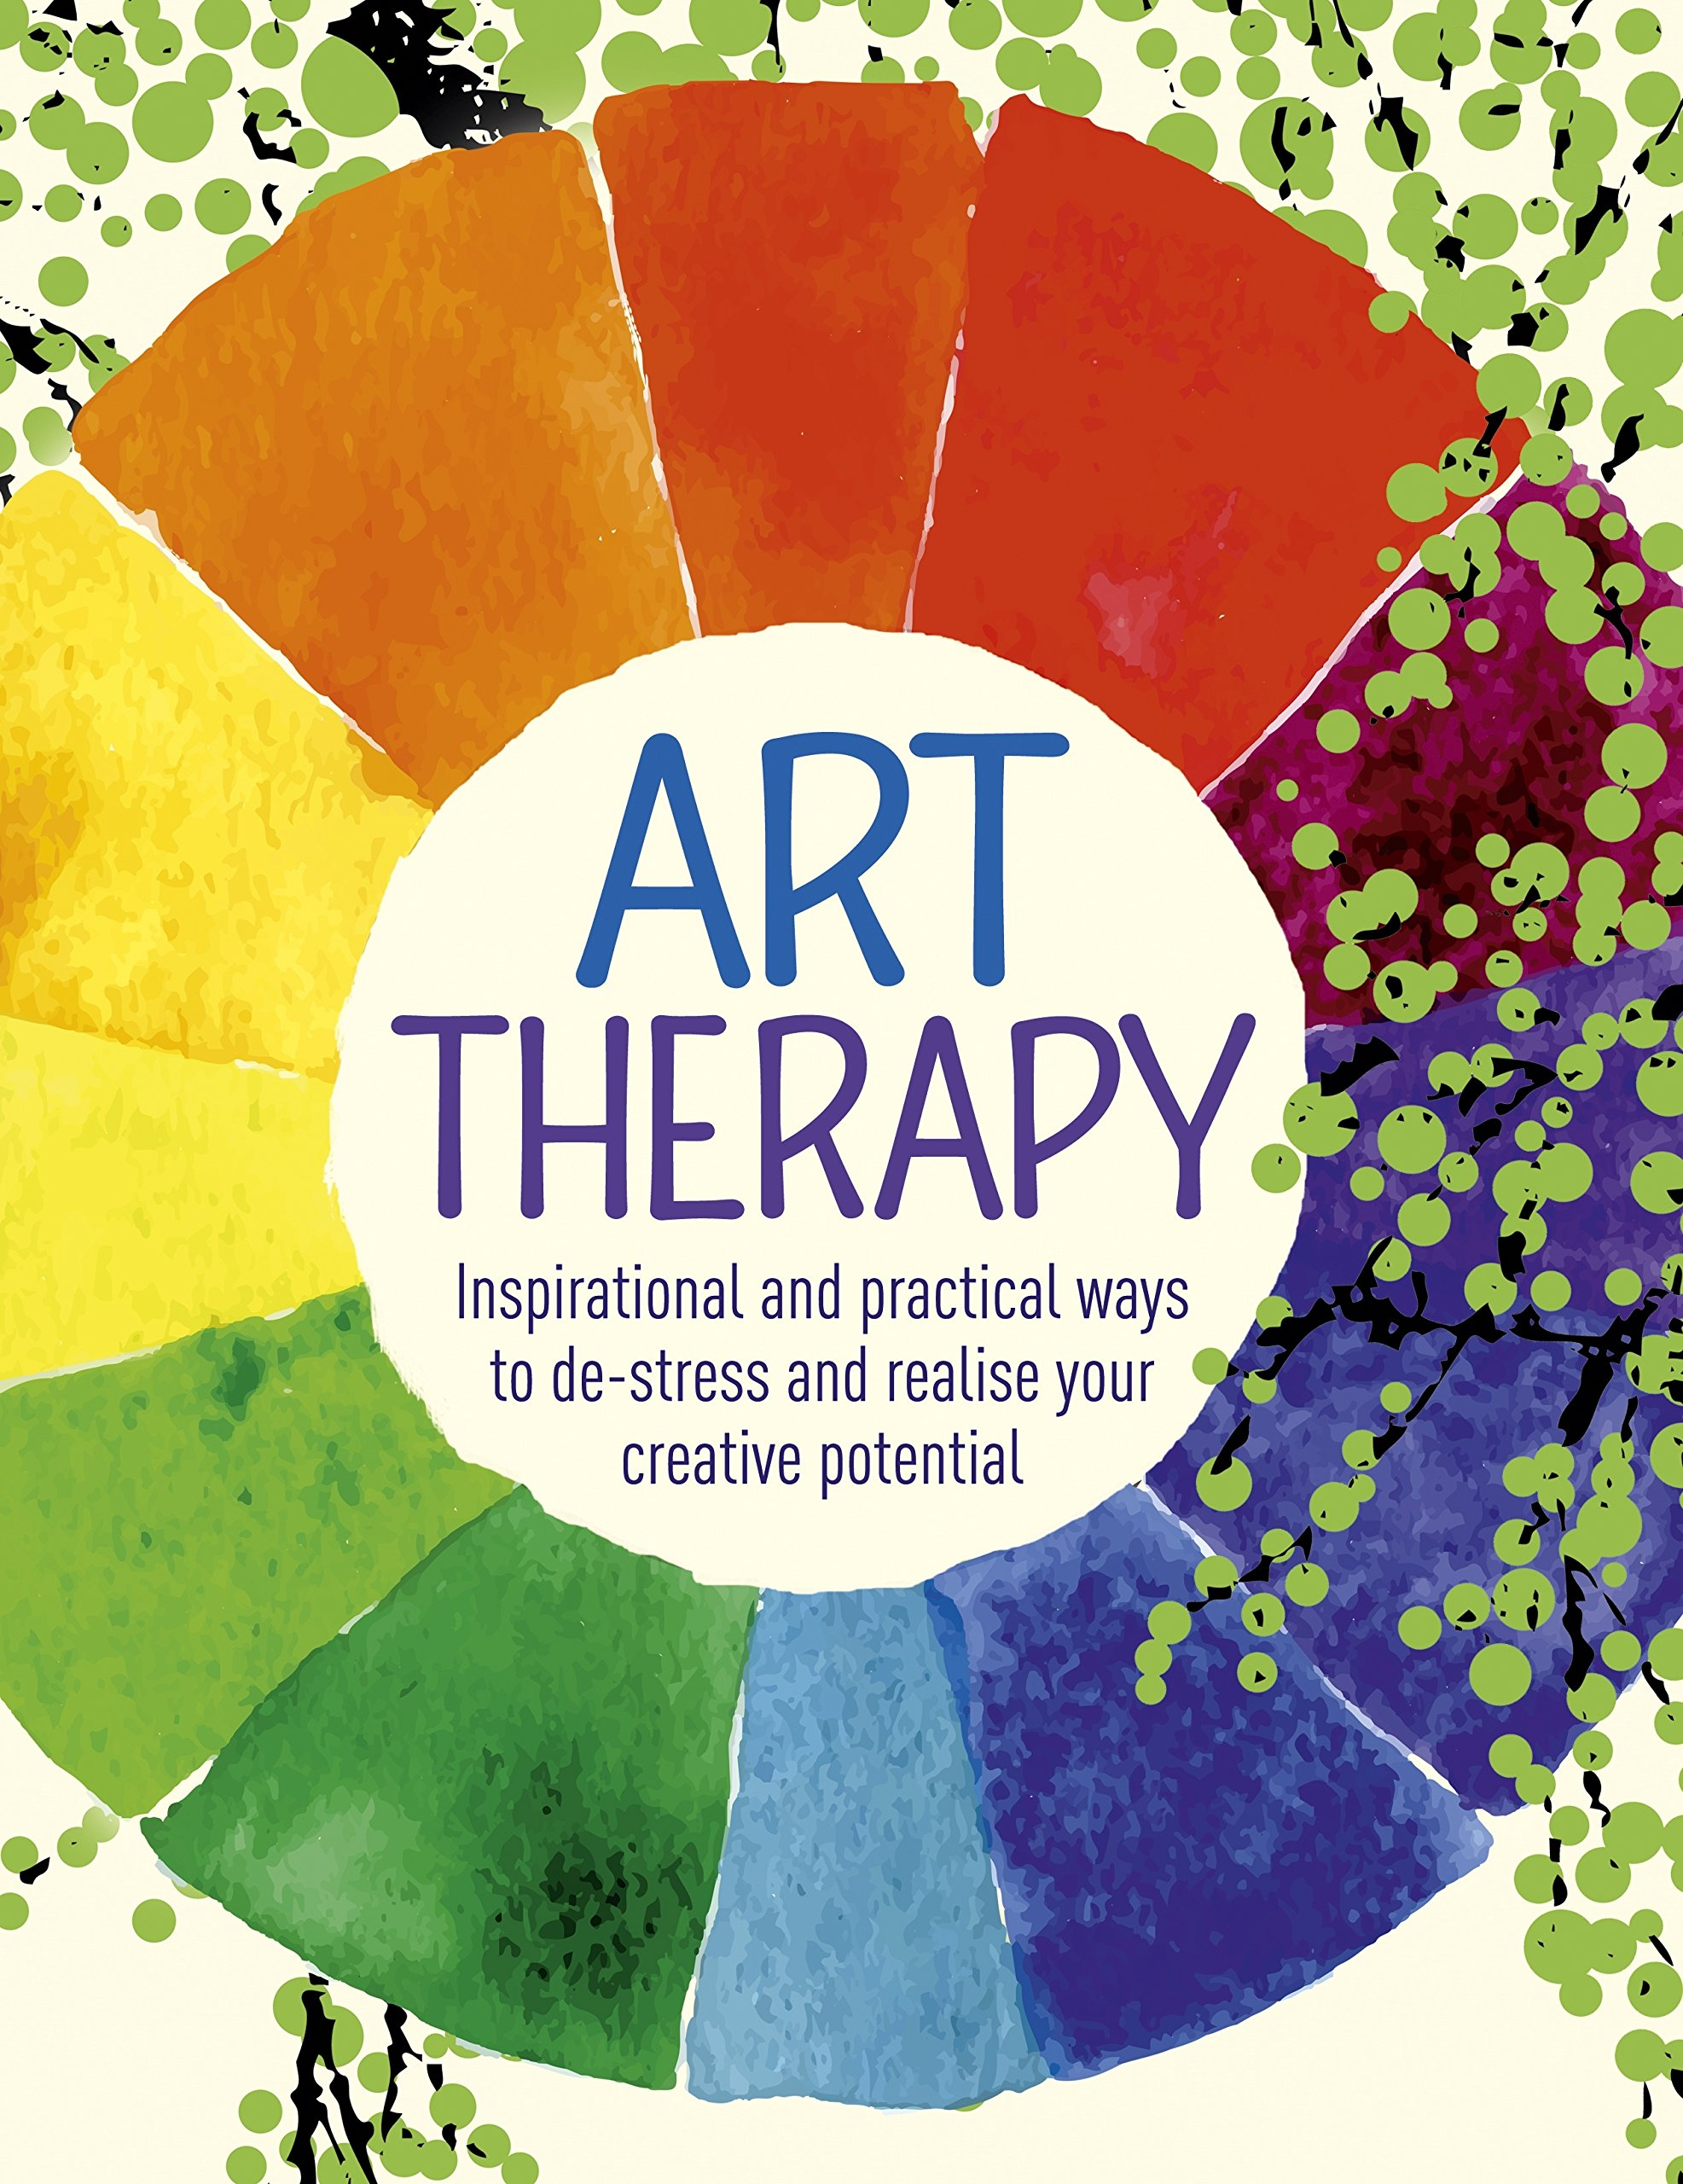 Amazon.com: Art Therapy: Inspirational and practical ways to de-stress and  realize your creative potential (9781784284633): Christine Watson: Books